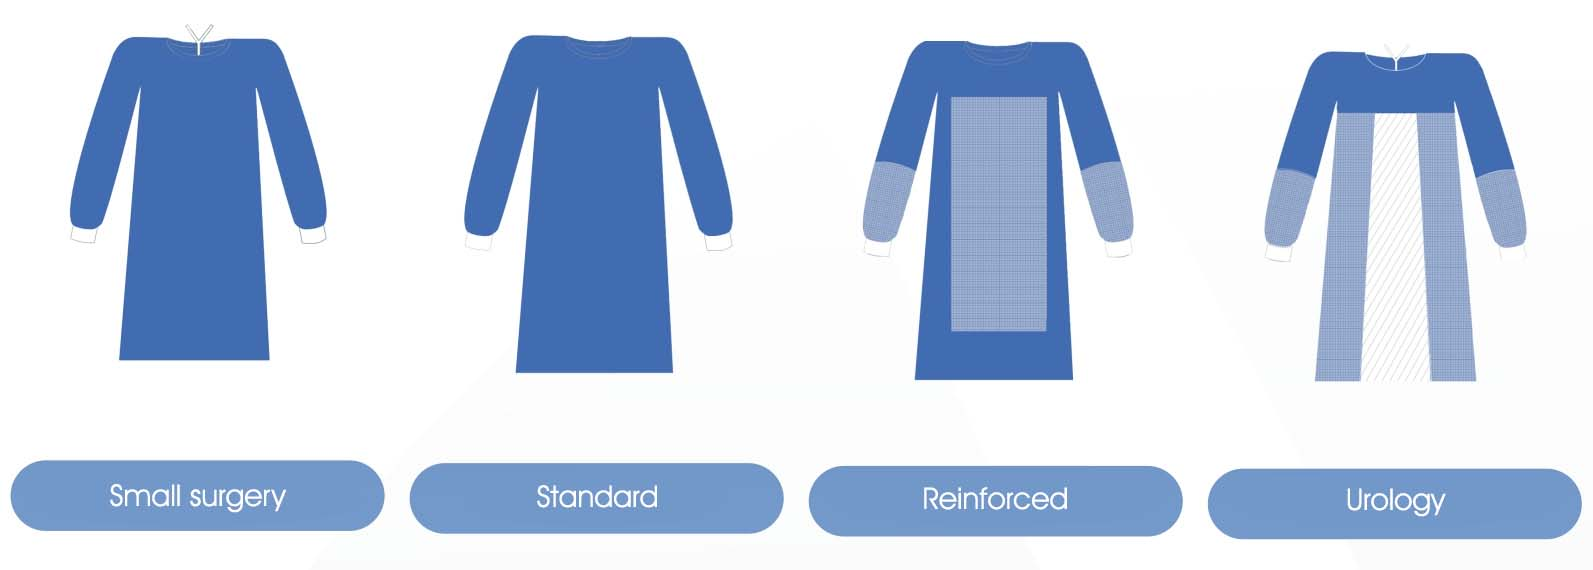 Types of surgical gowns